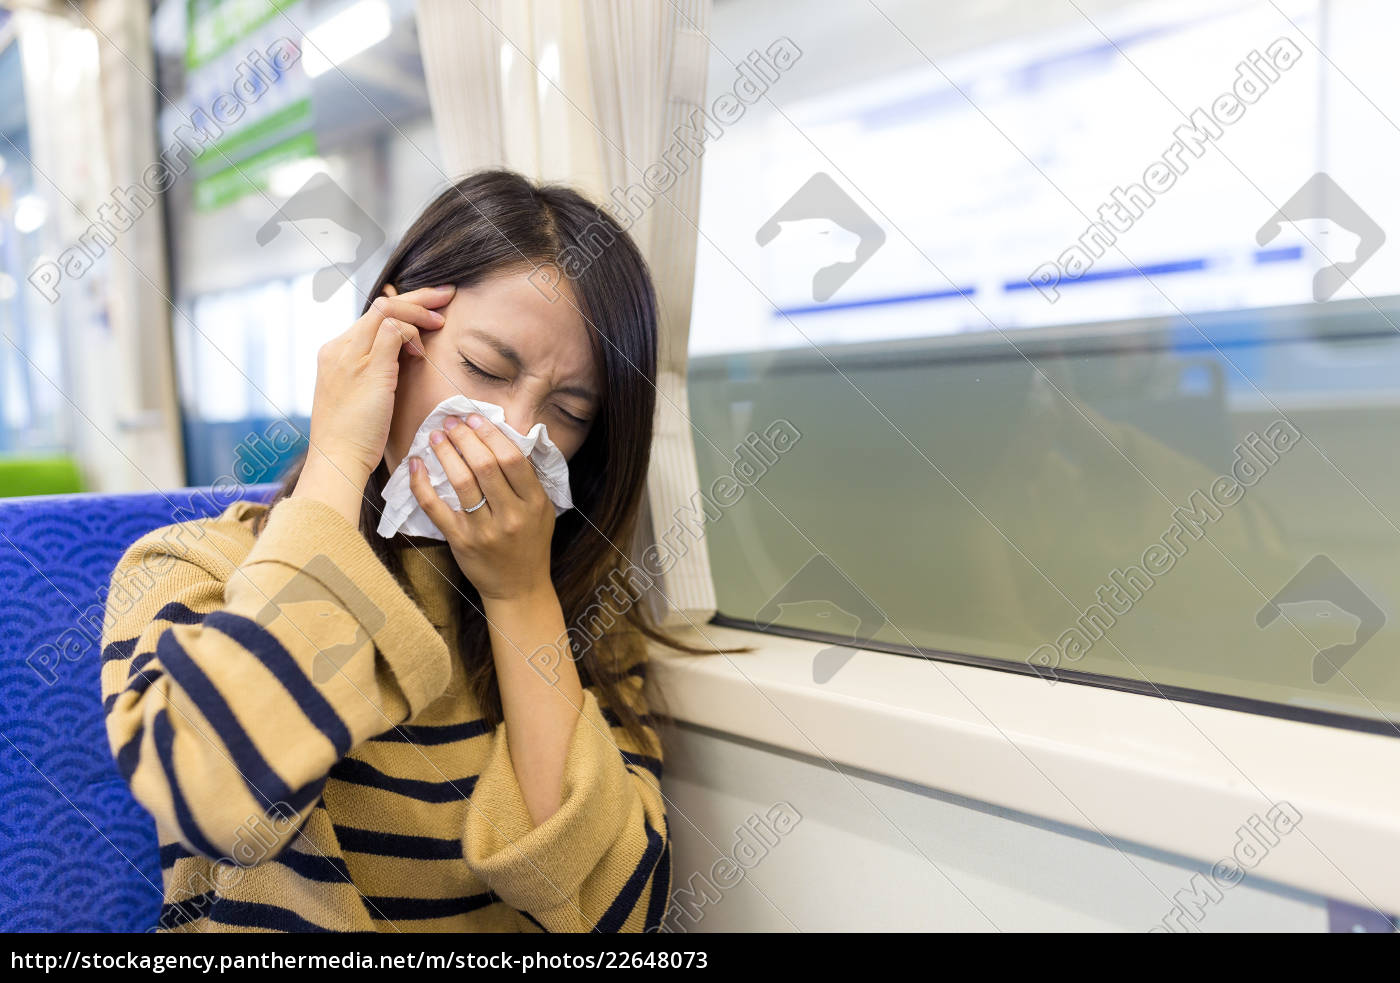 woman, sneezing, inside, train, compartment - 22648073